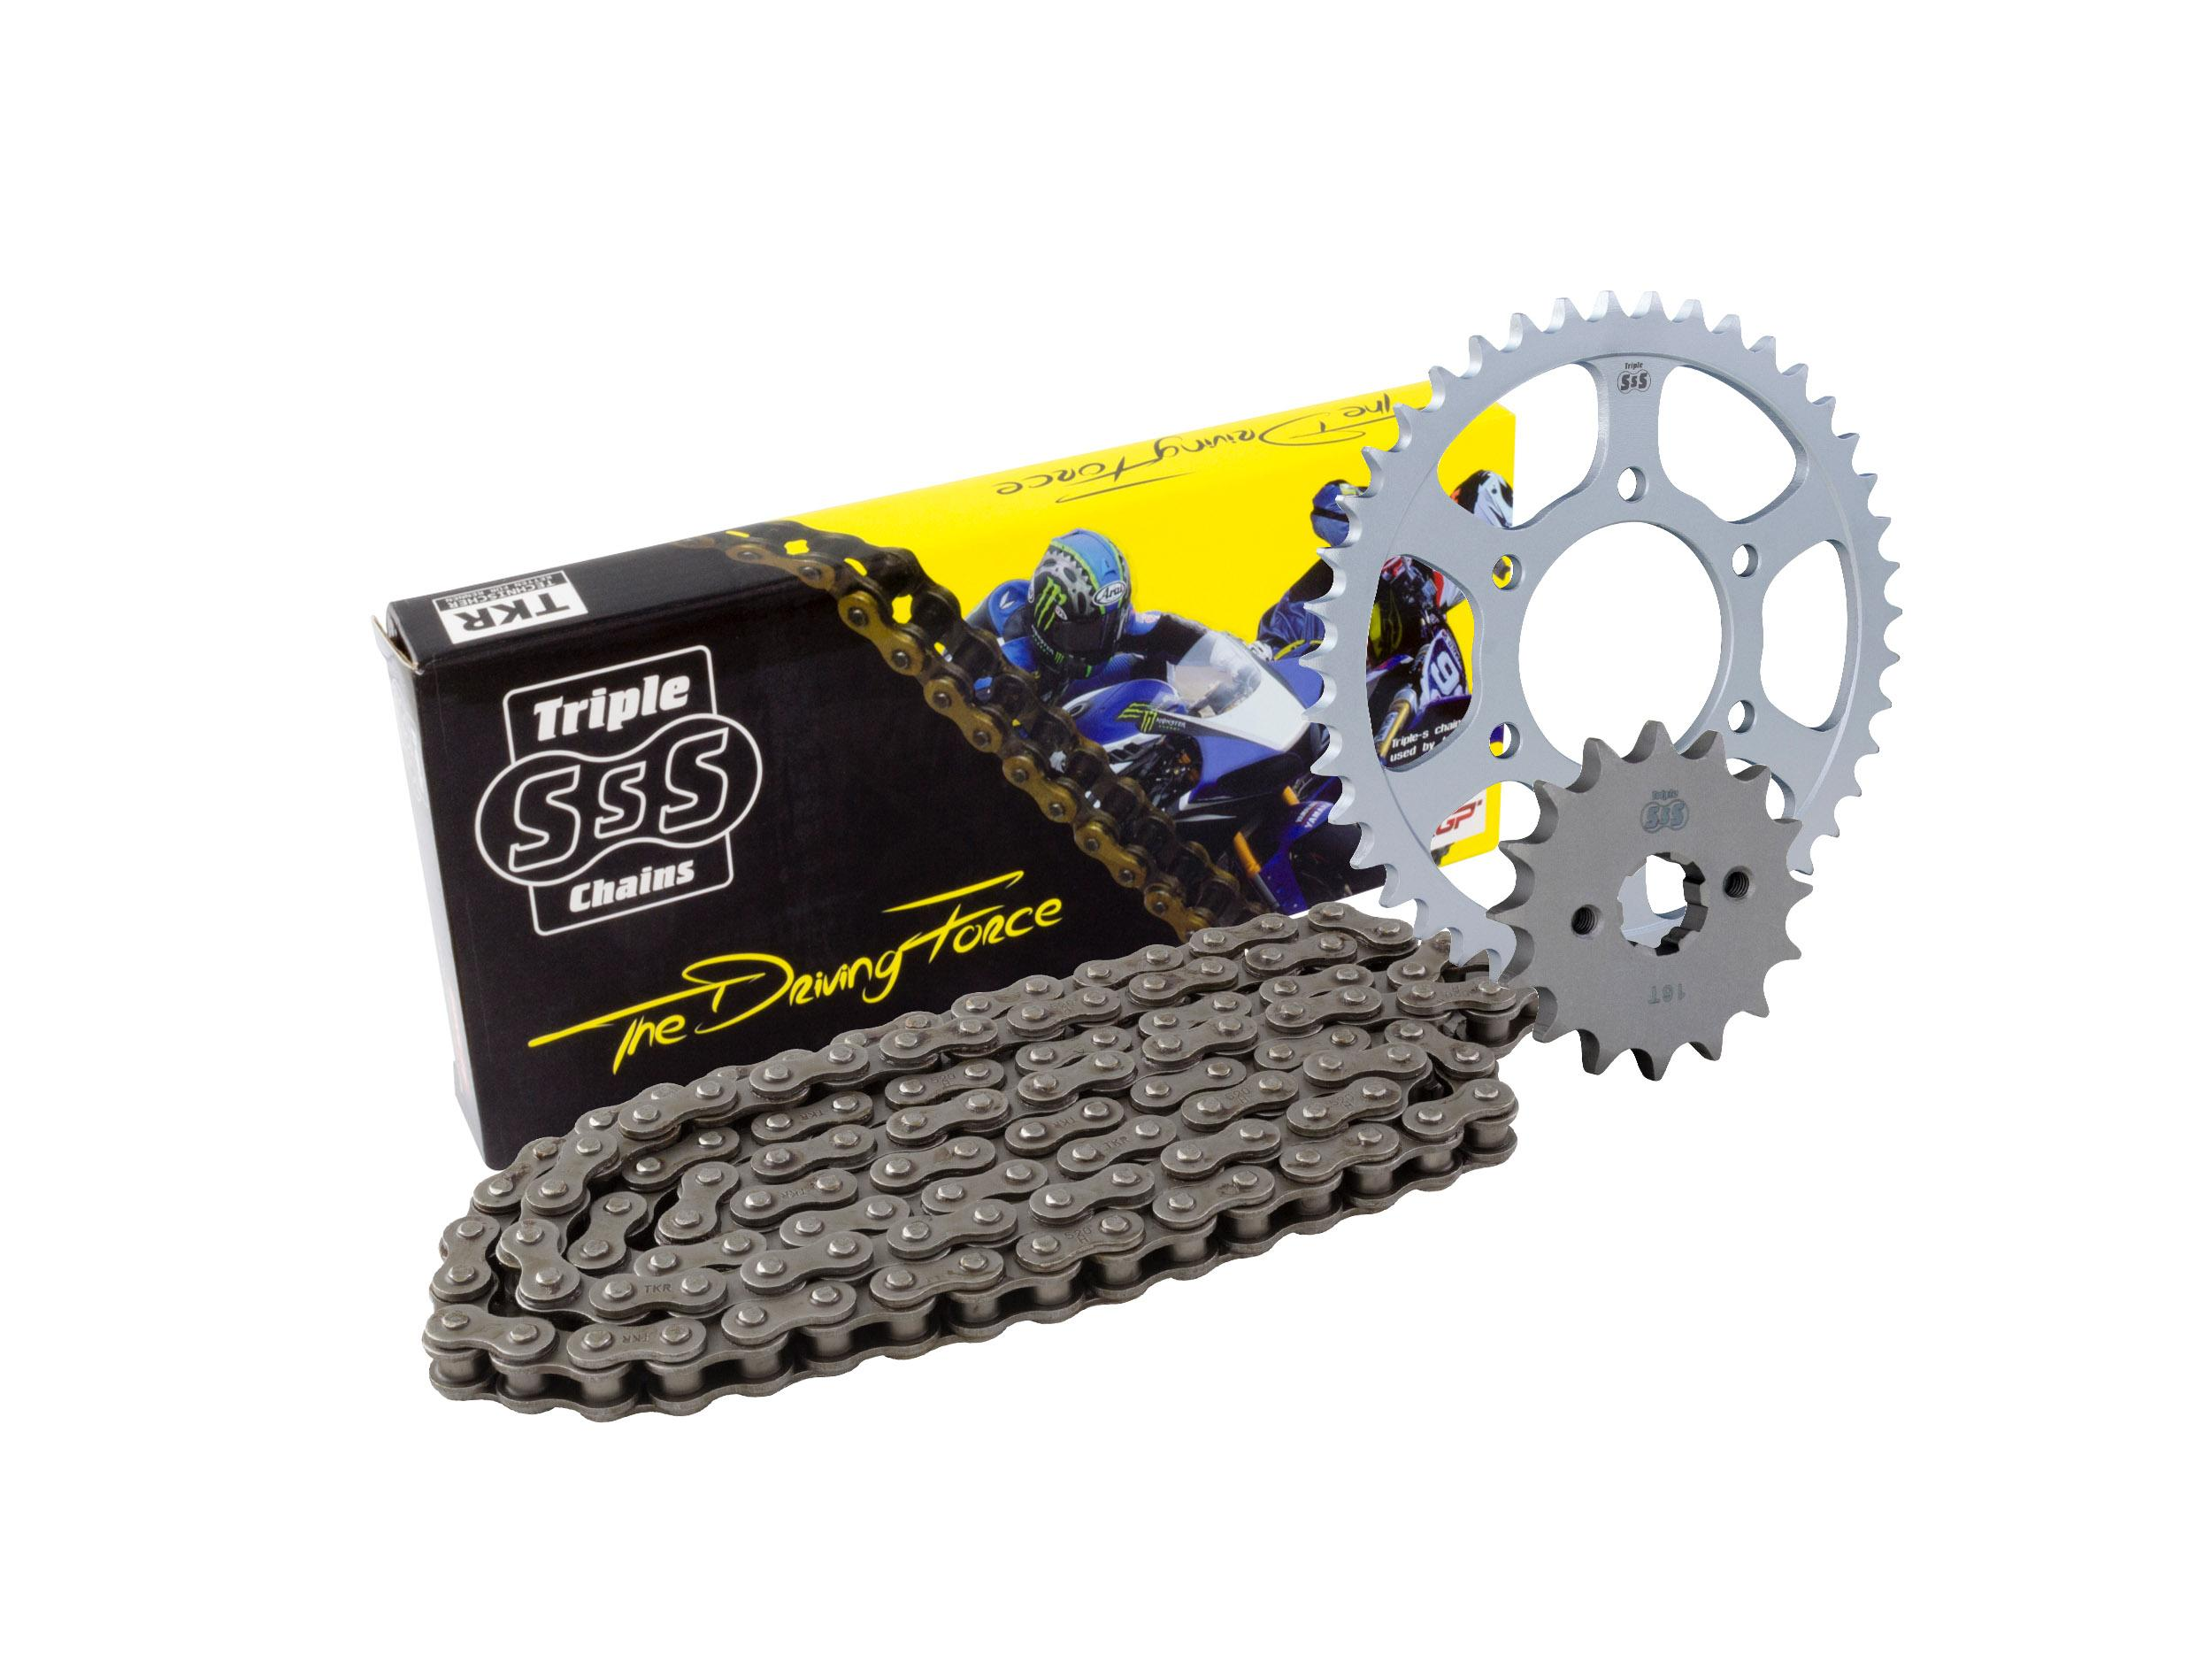 Cagiva 125 Mito Evolution 92-99 Chain & Sprocket Kit: 14T Front, 41T Rear, HD Chain 520H 114Link